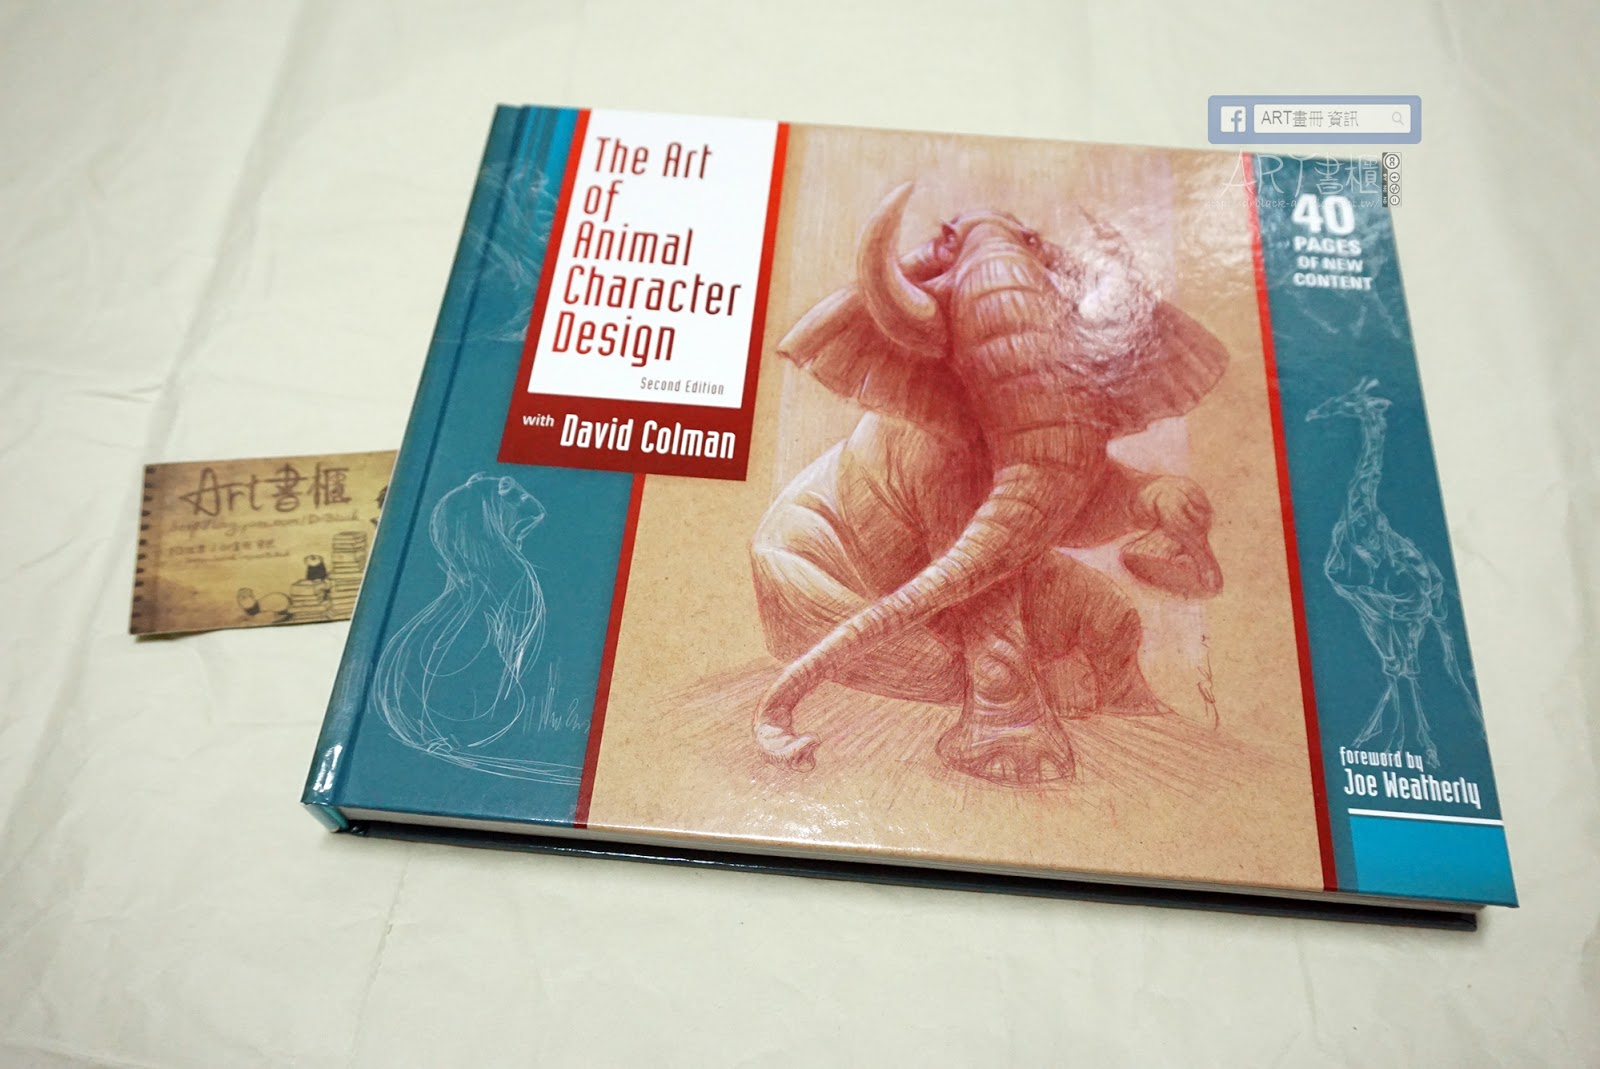 The Art Of Character Design With David Colman Volume I : Art書櫃 book review 大衛·科爾曼的塗鴉本 動物角色設計的藝術 第 版the art of